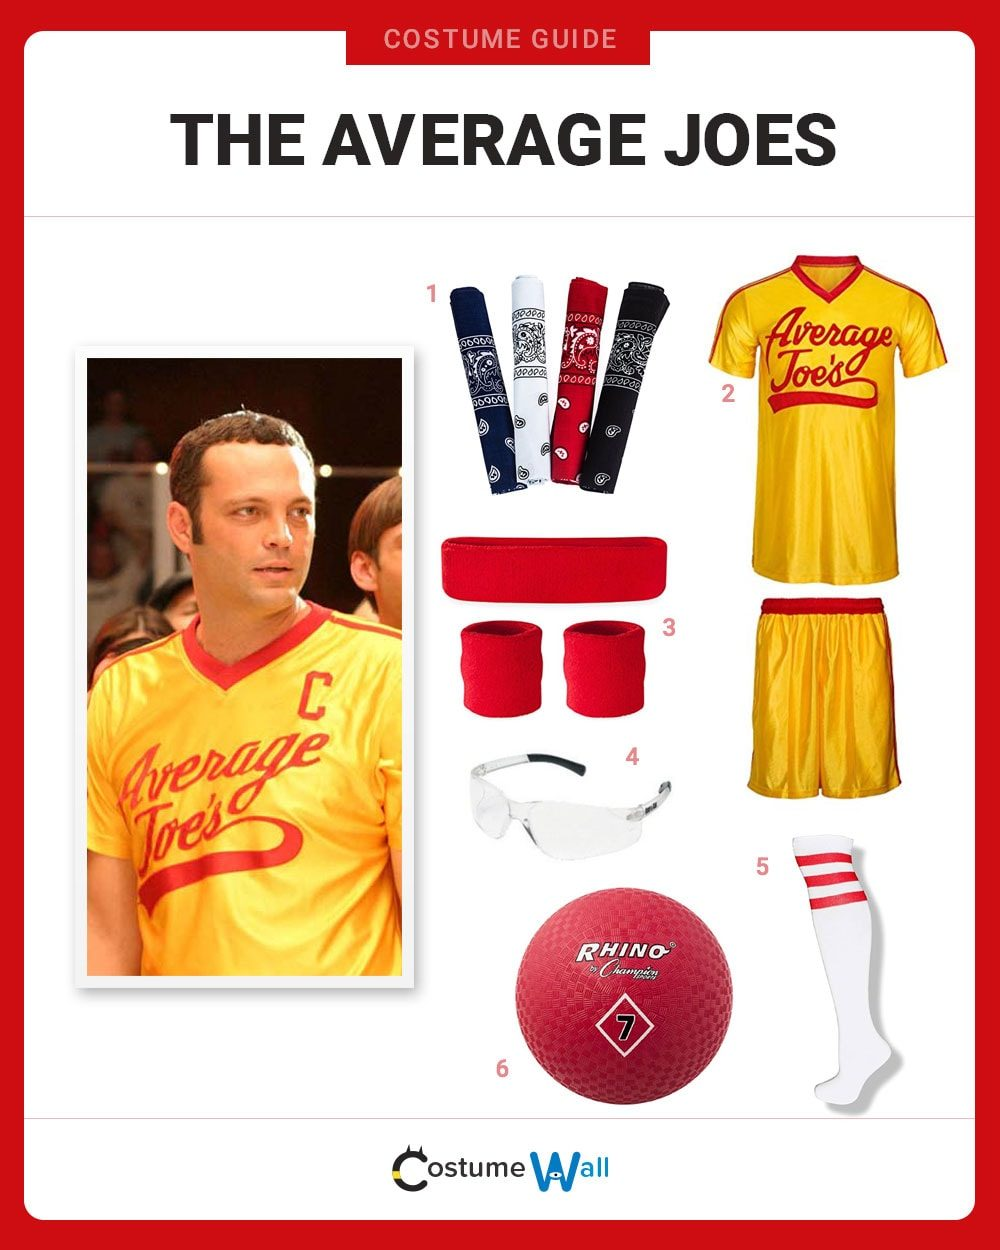 The Average Joes Costume Guide